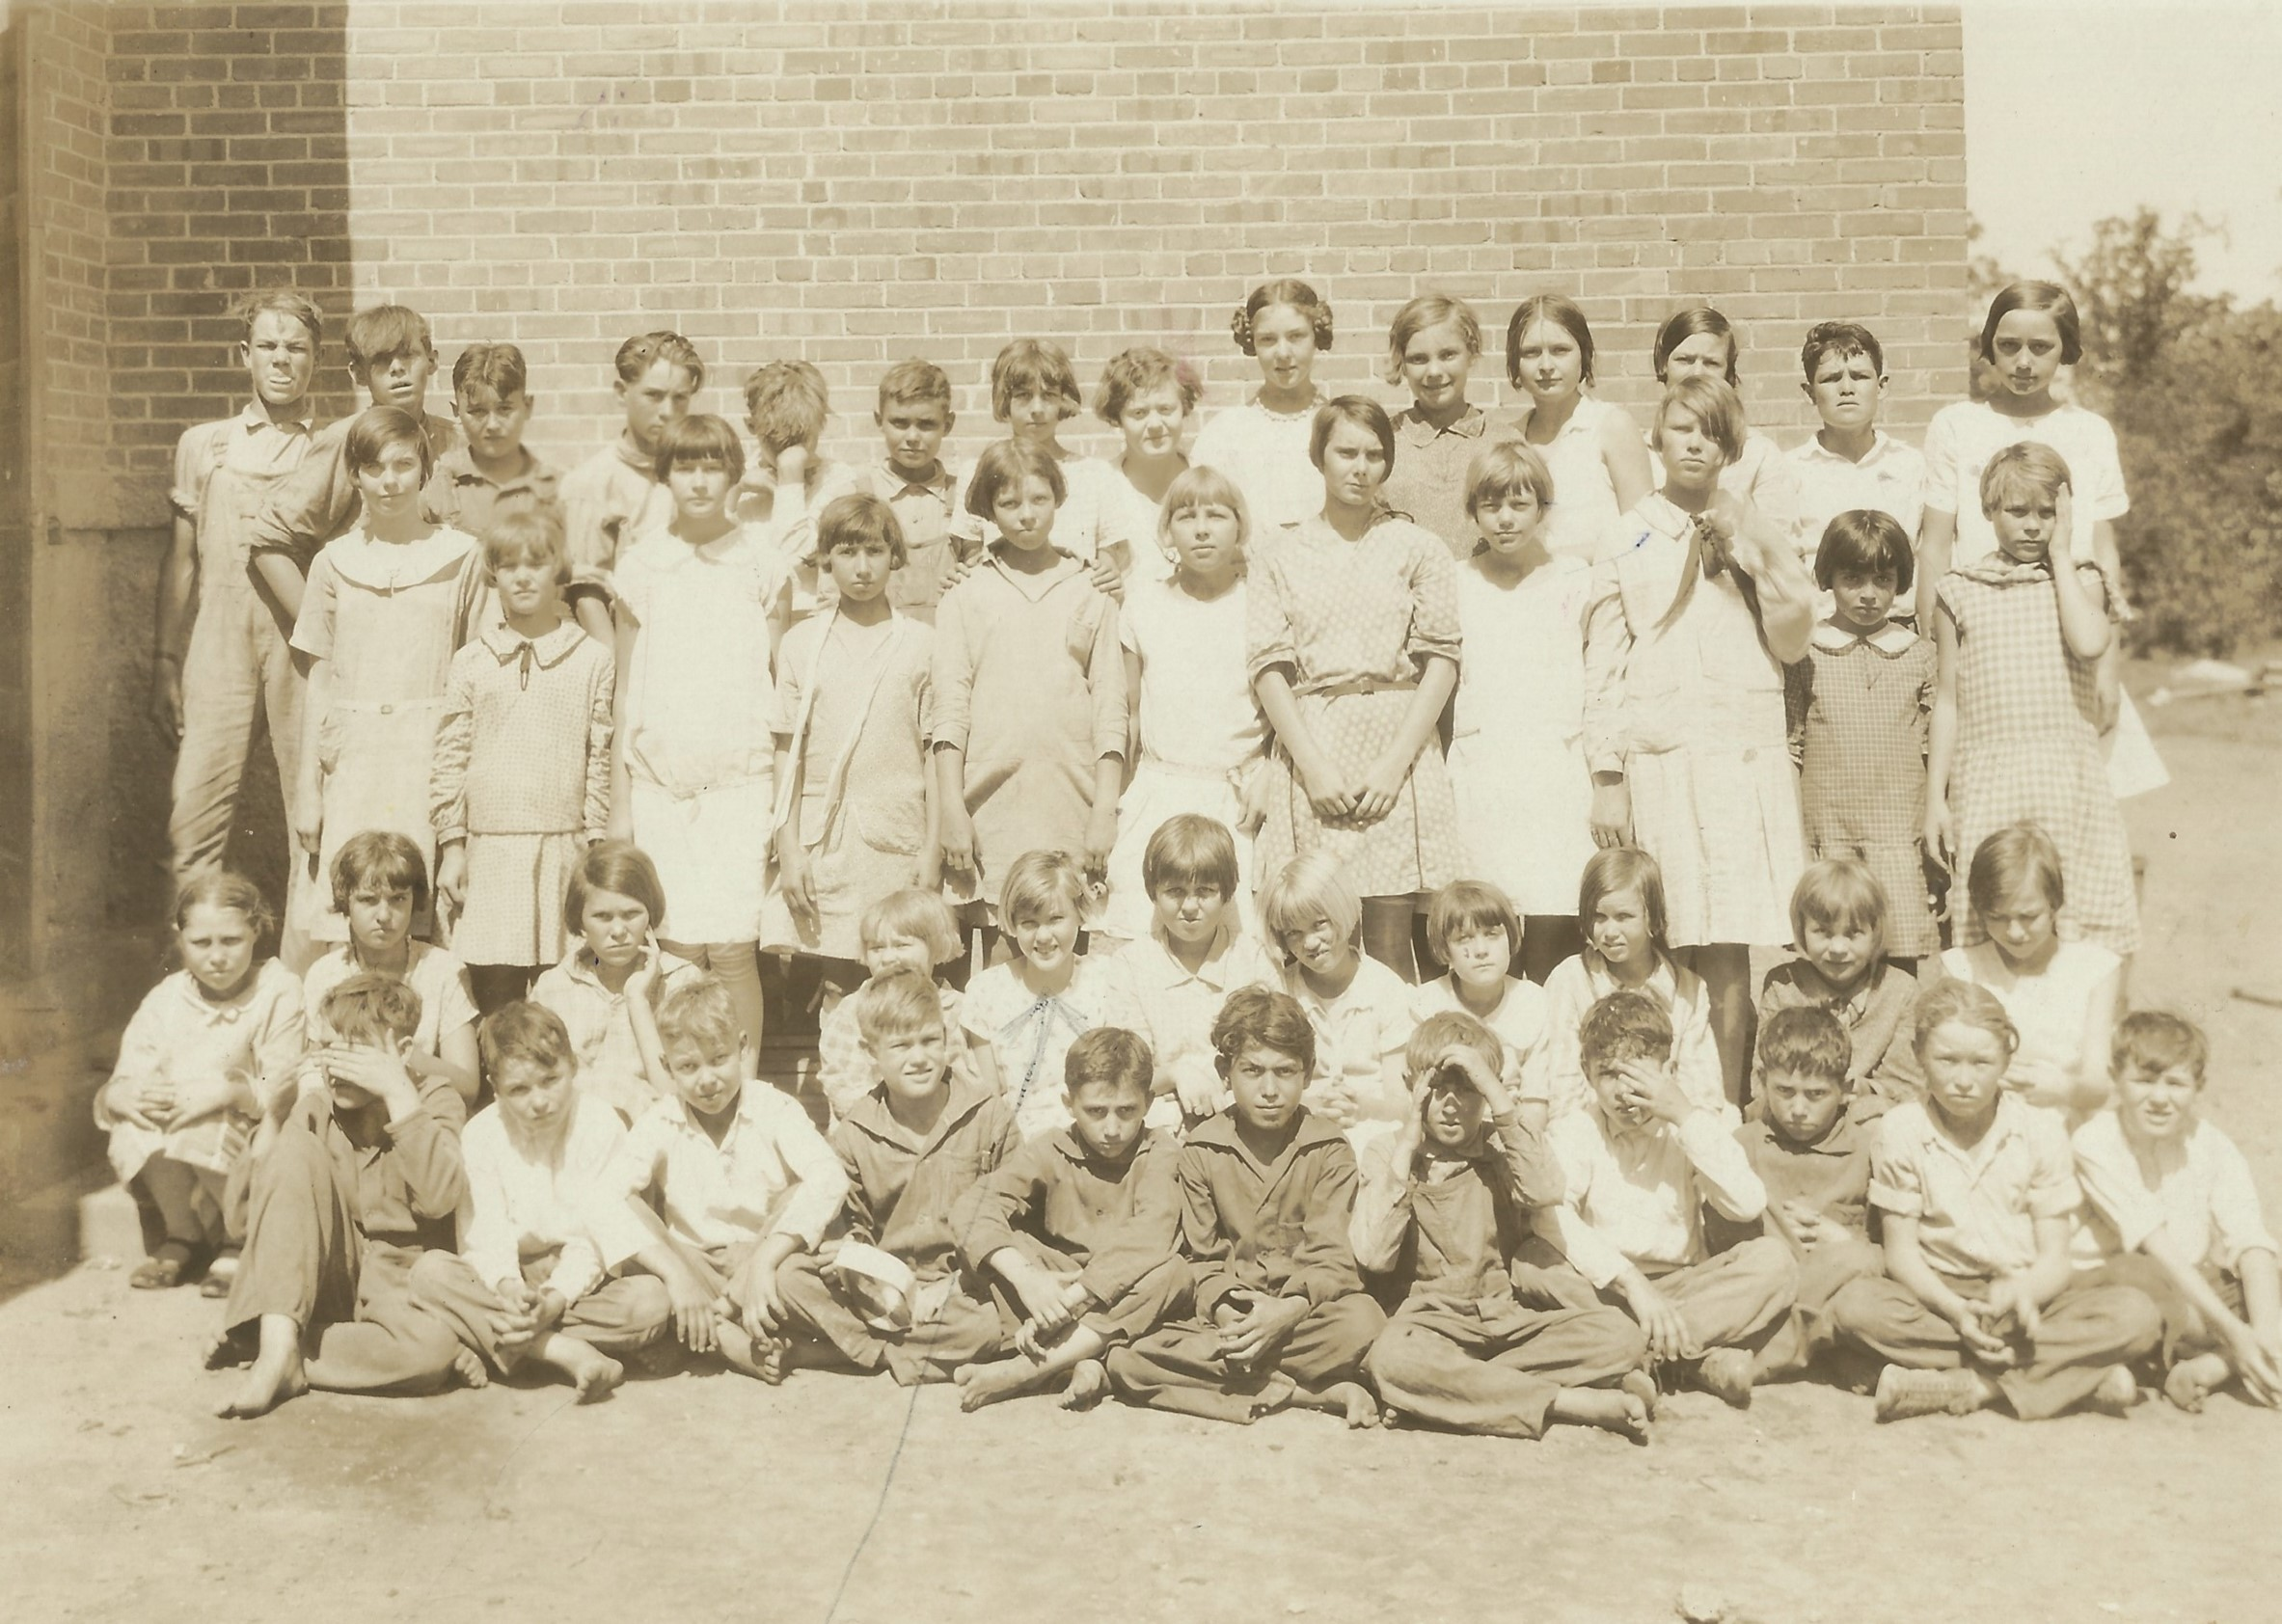 TM at Castleberry sch- back row 2nd from right